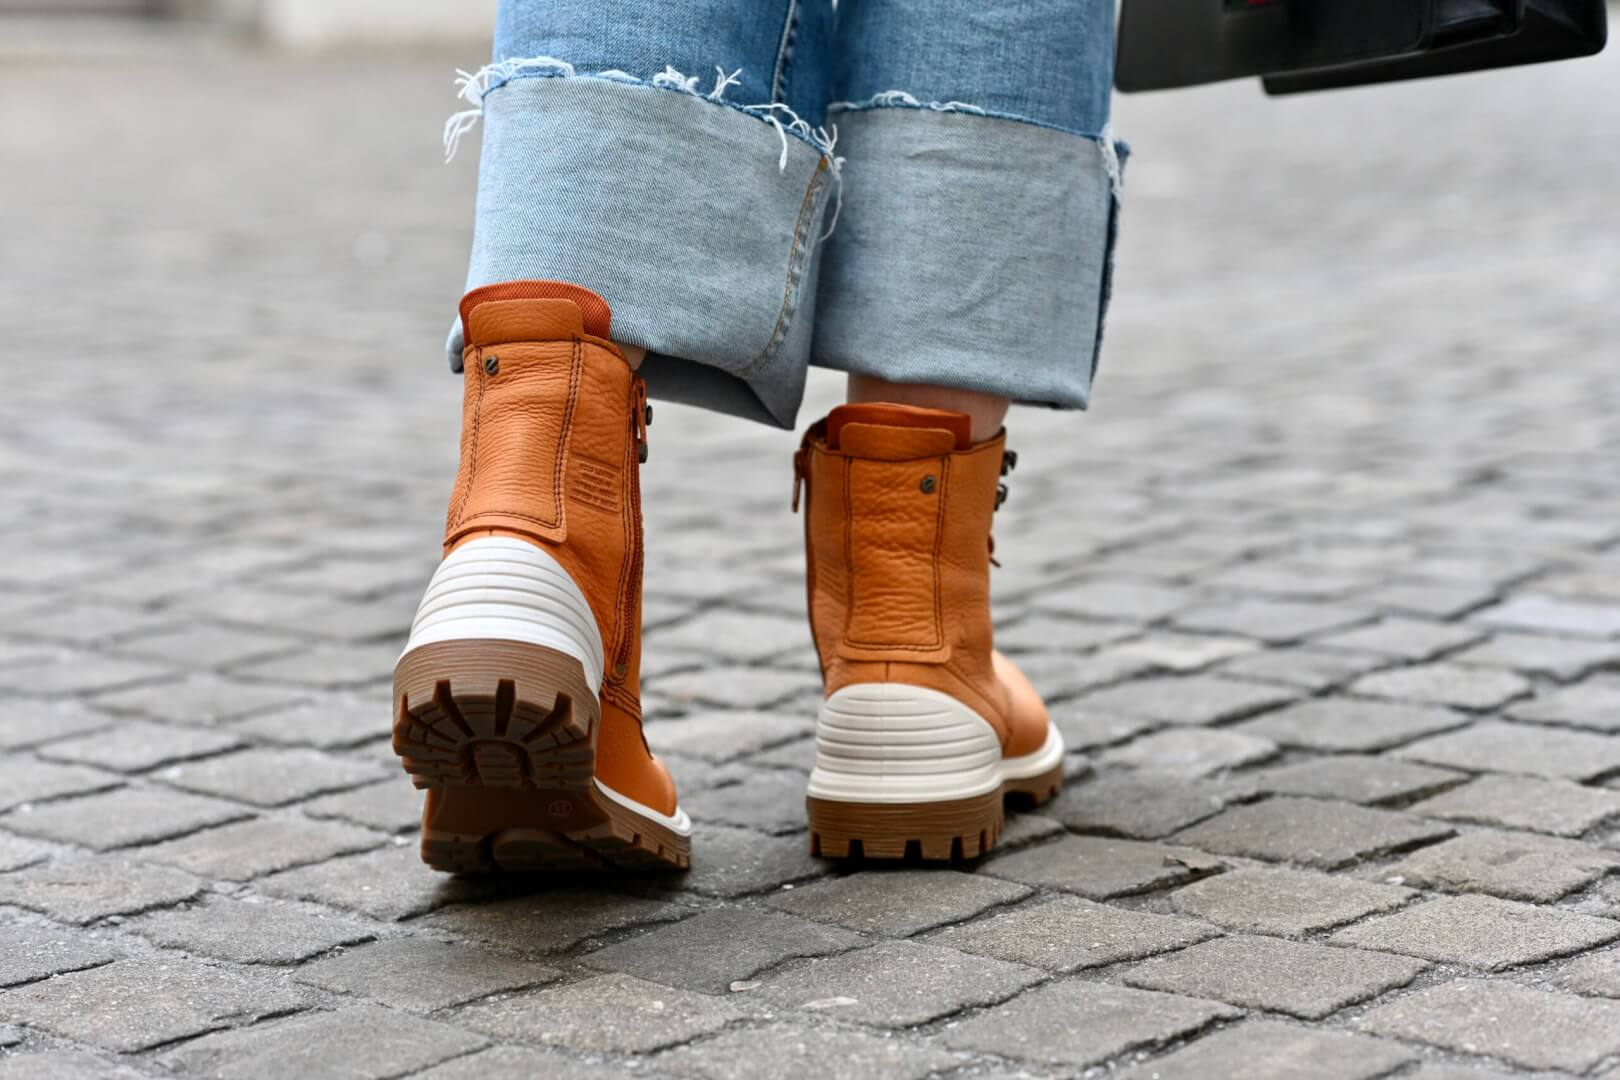 The Urban Edge Boots I Have Fallen in Love With